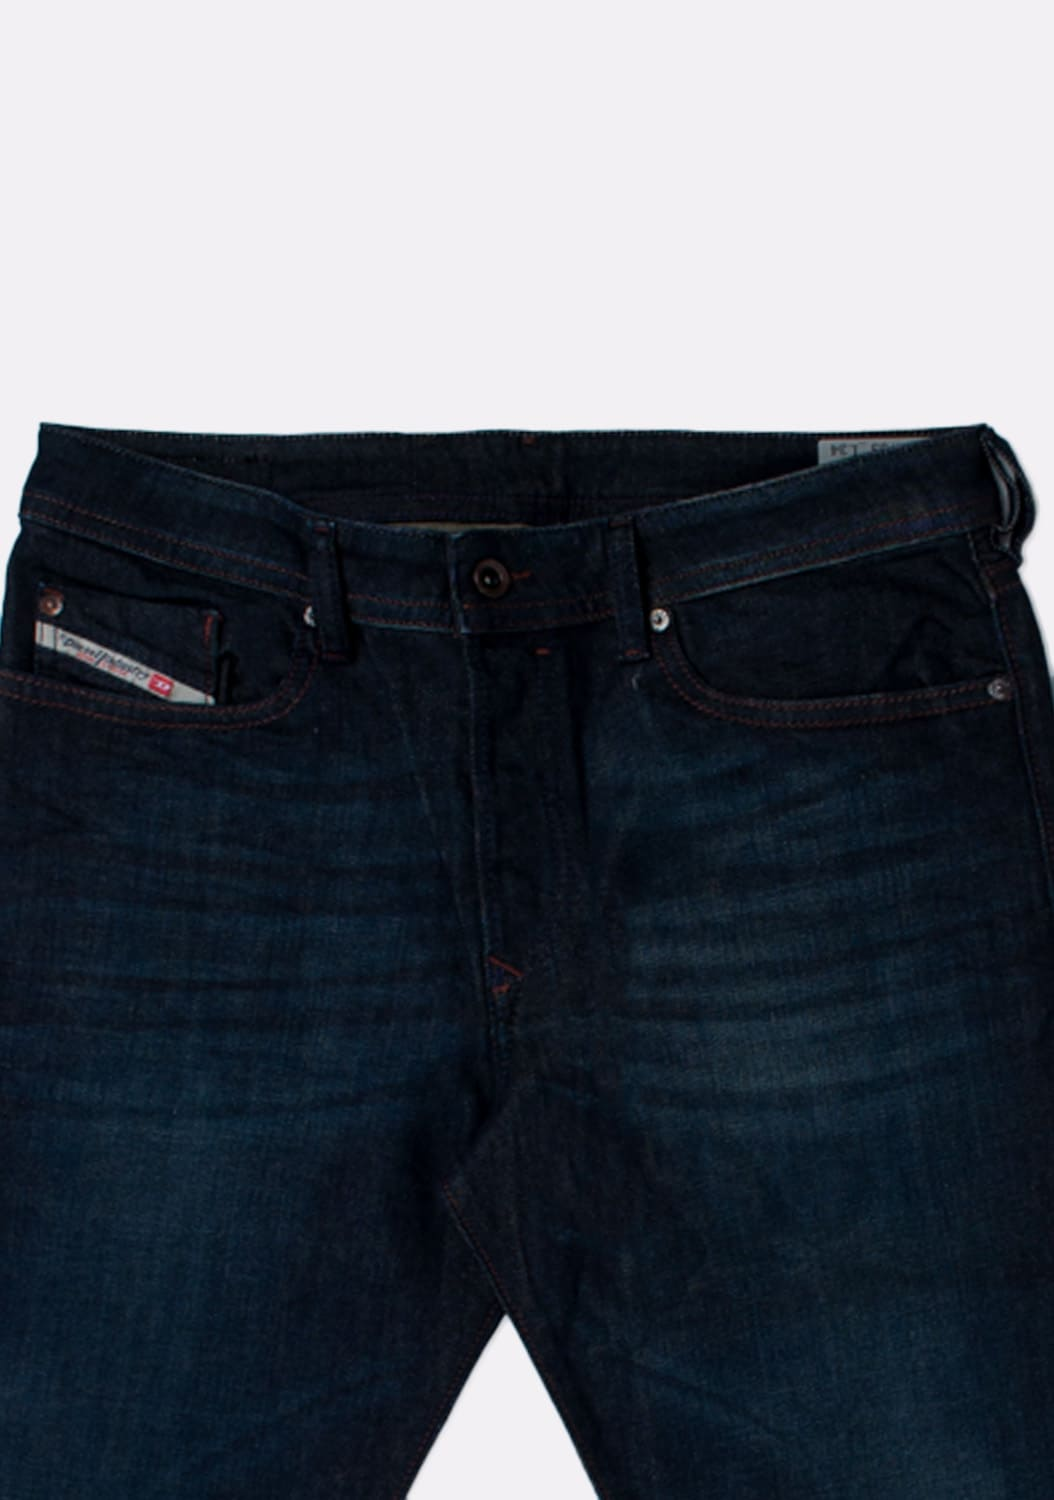 Diesel-Buster-0845G-Stretch-Regular-Slim-tapered-33-34 (3)